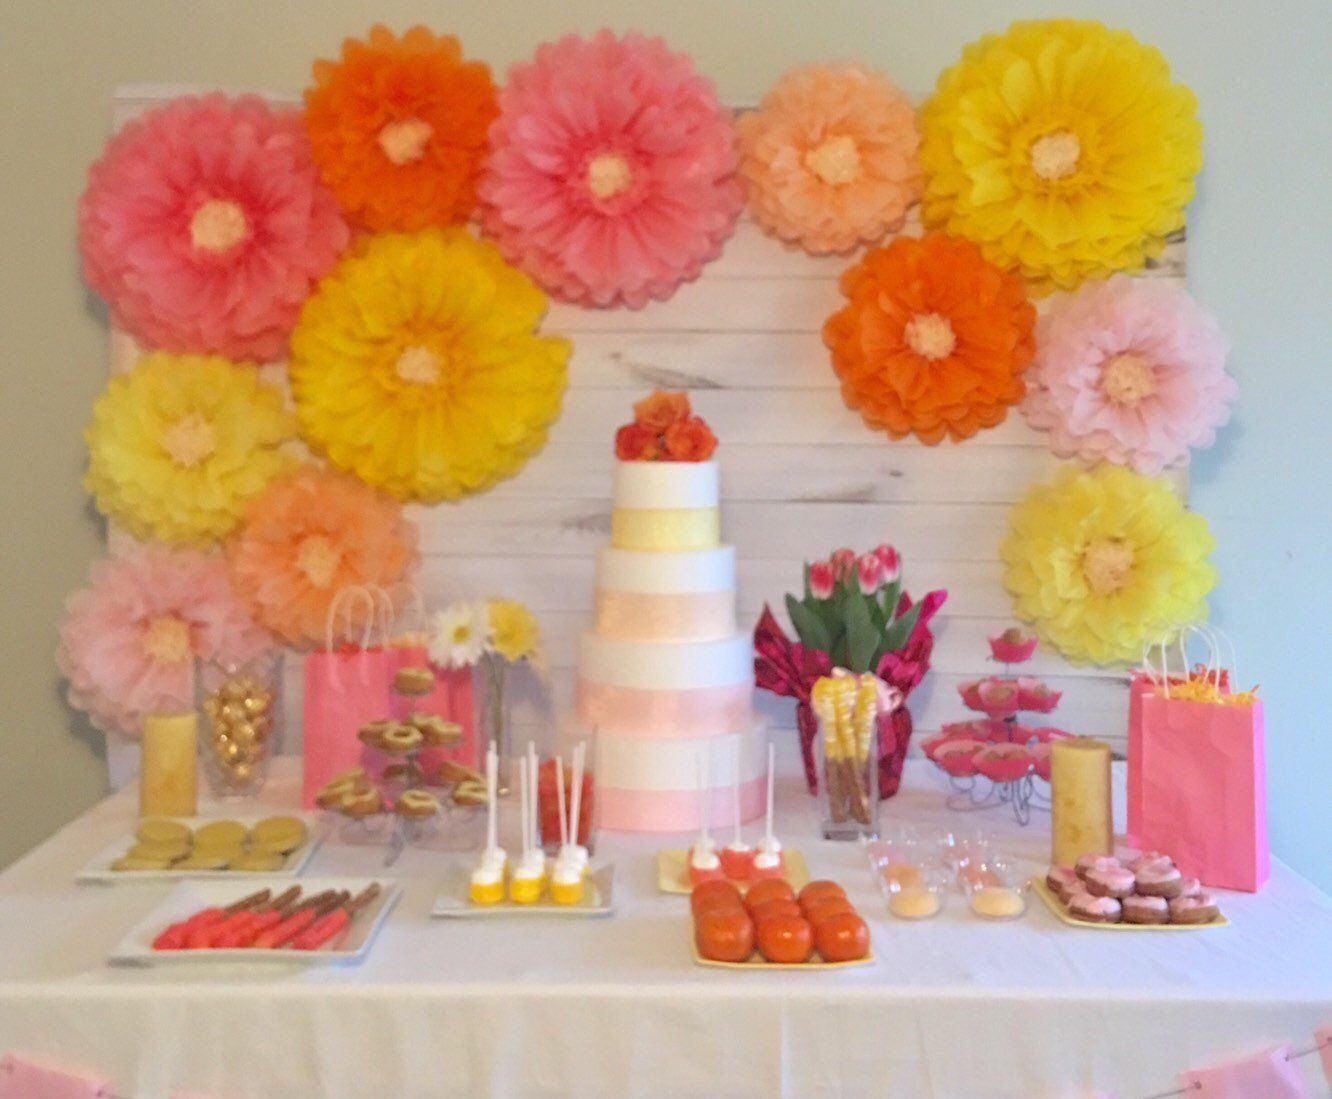 Giant Paper Flower Backdrop In Pink Orange And Yellow For Baby